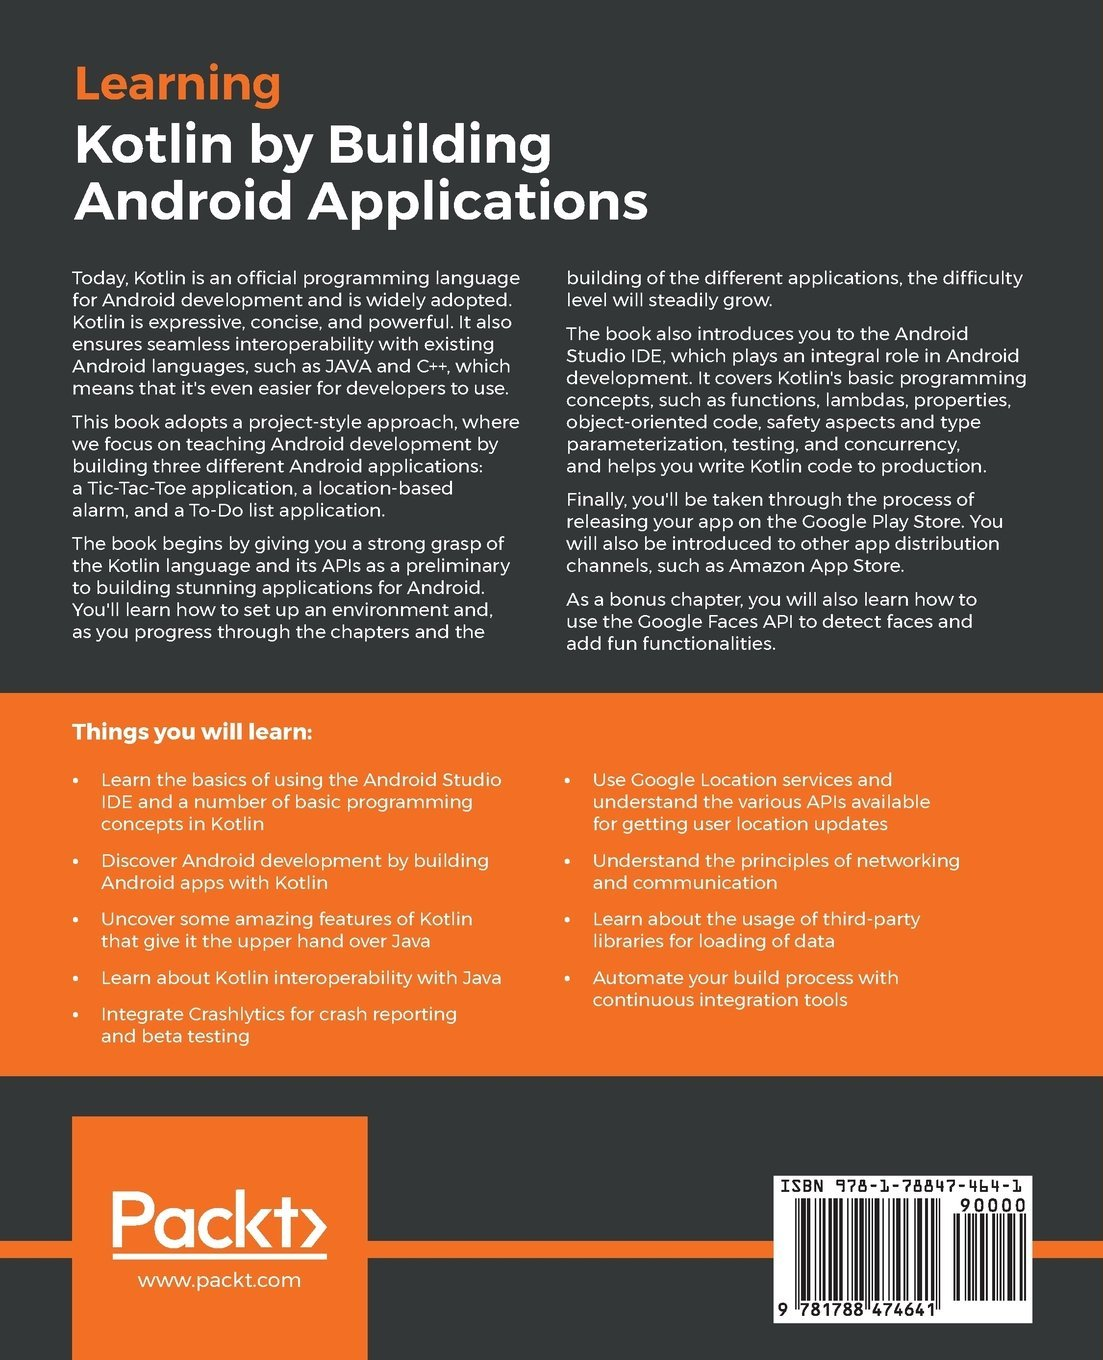 Learning Kotlin by building Android Applications: Explore the